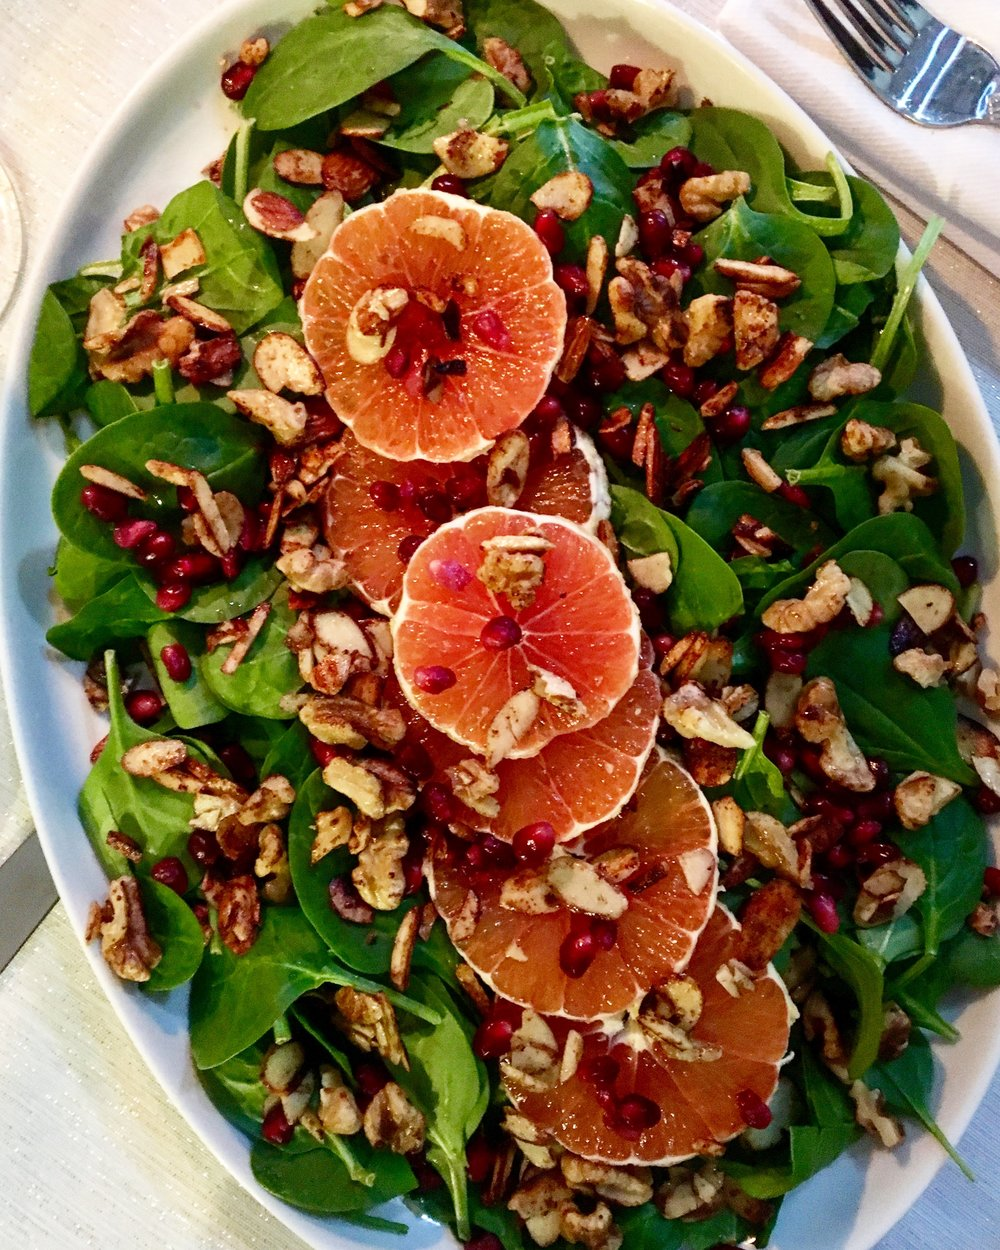 Spinach Salad: Cara Cara Oranges / Spiced Nuts / Pomegranate